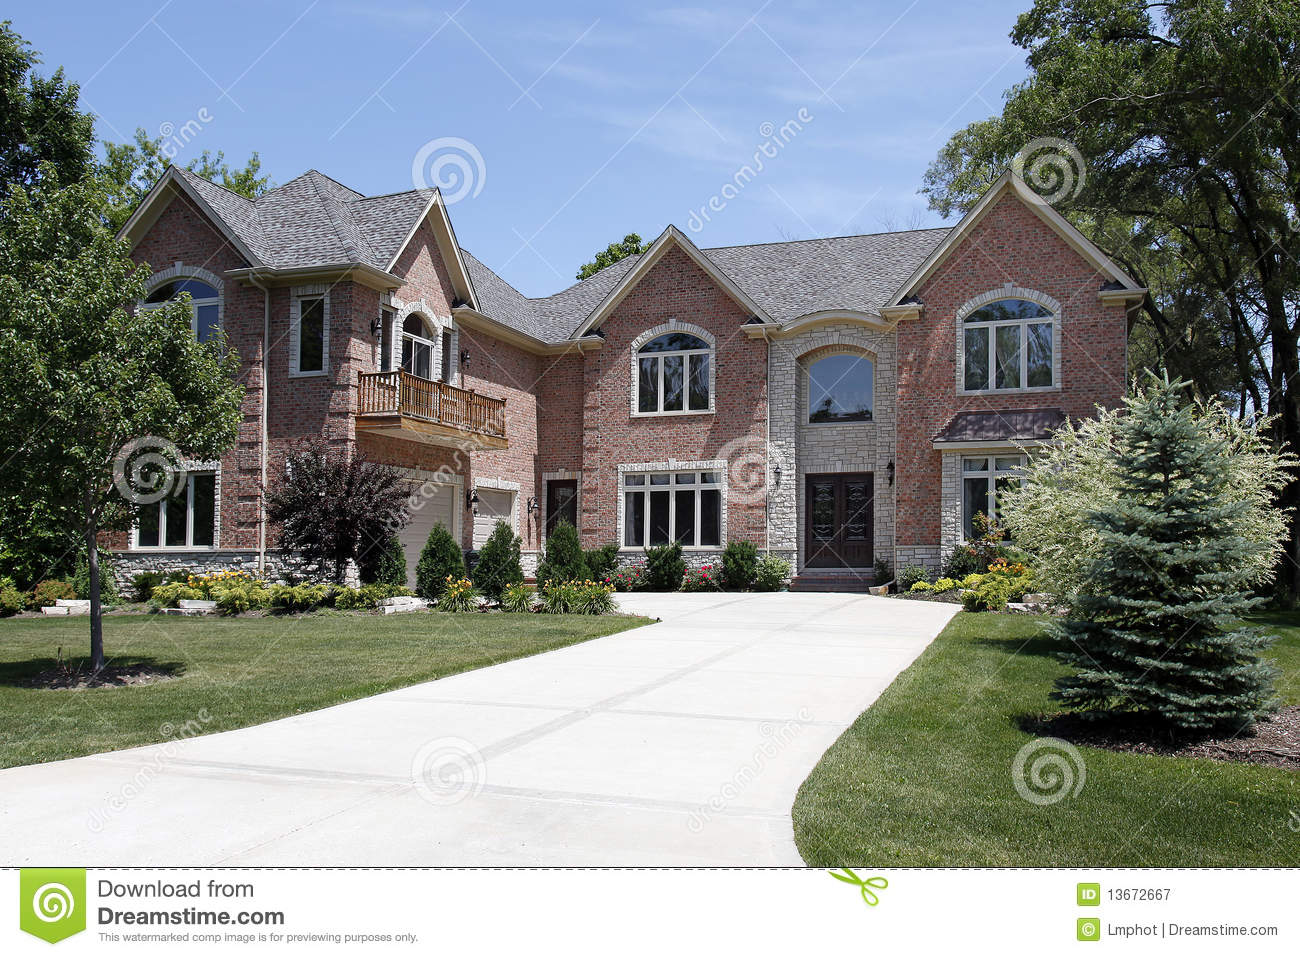 Luxury Home With Front Balcony Stock Image Image Of